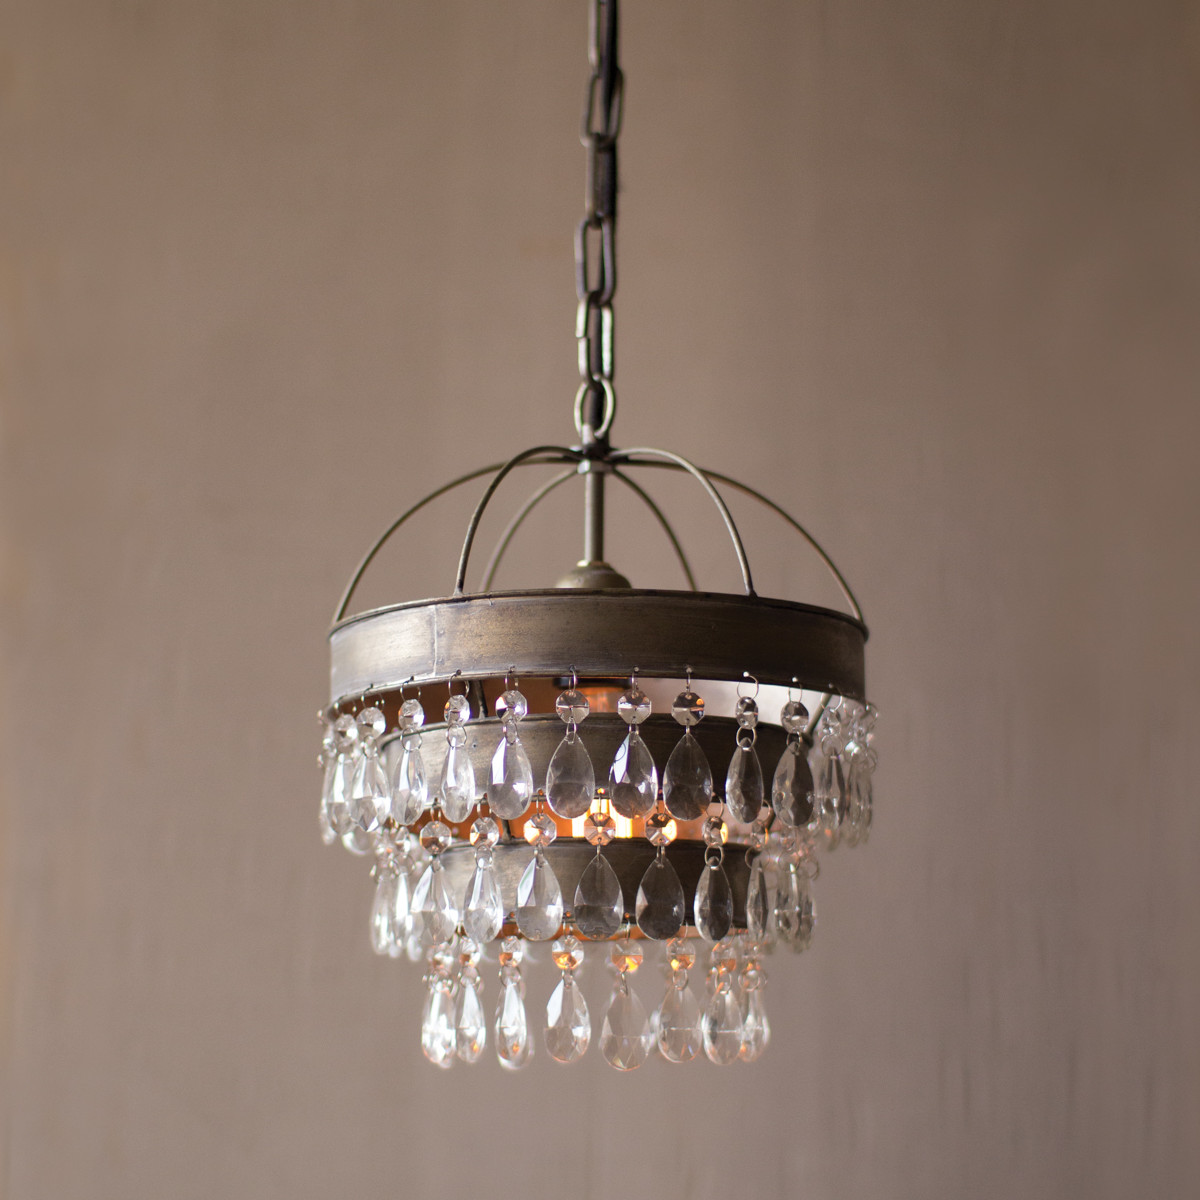 3-Tier Crystal Drop Pendant Lamp with Hanging Shade and Crystals